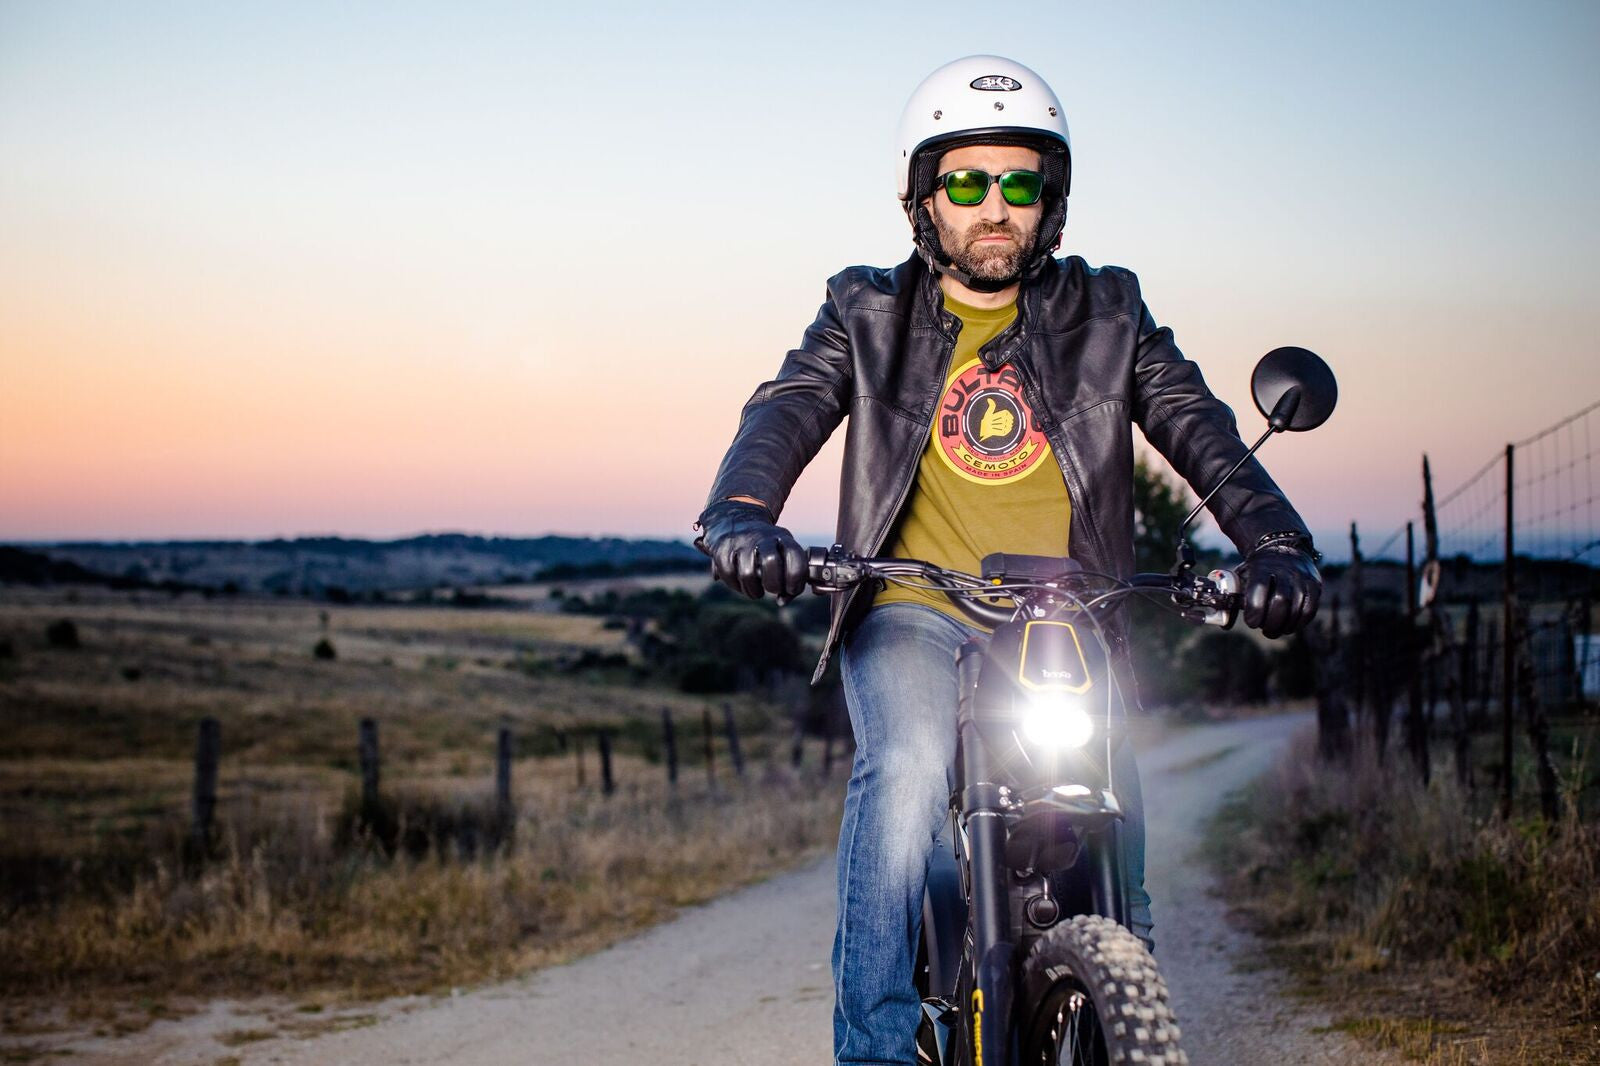 Bultaco Brinco C Restyle Night Time Shoot 11